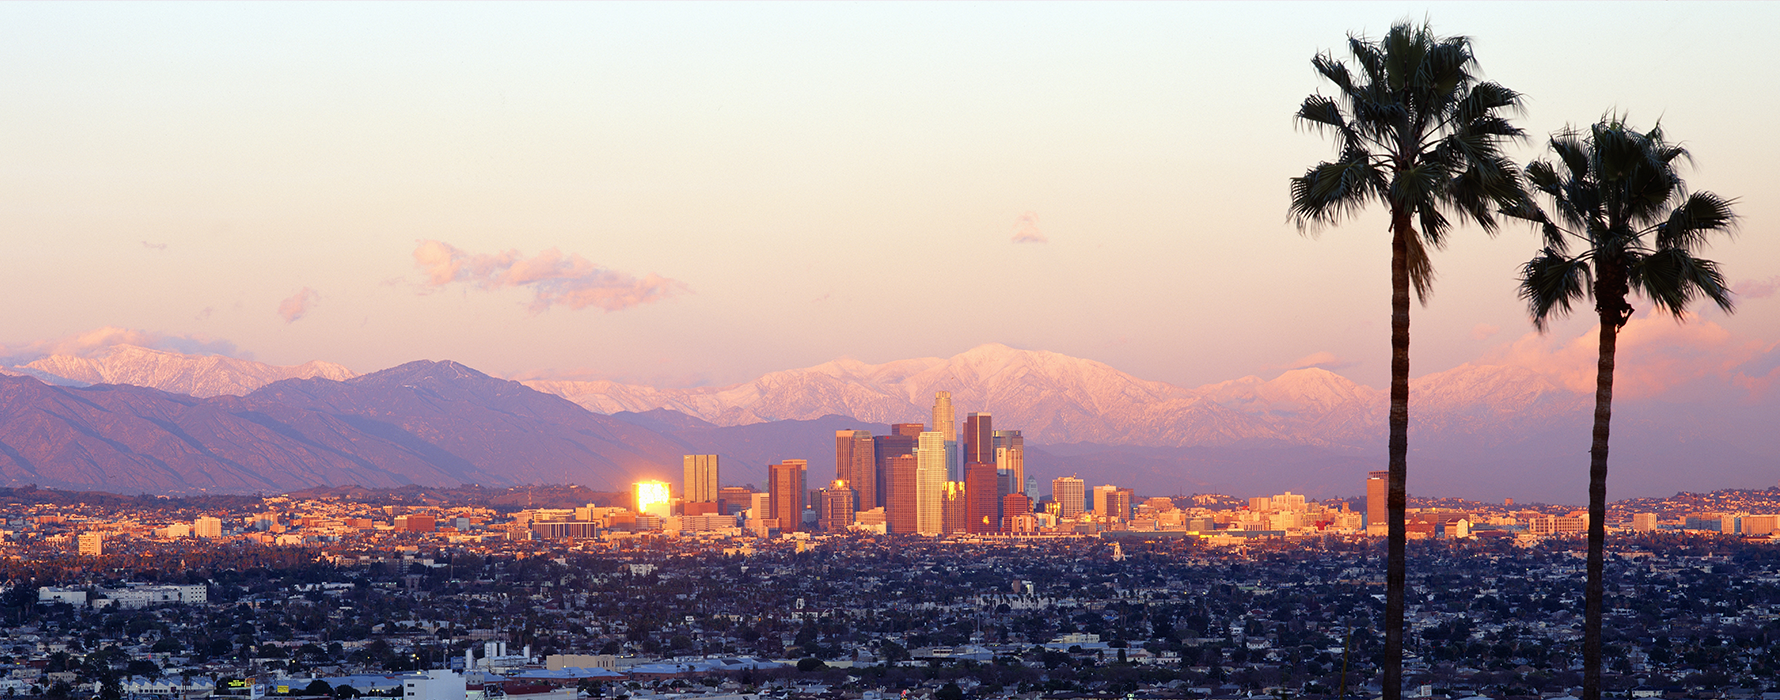 The Los Angeles skyline at sunset.